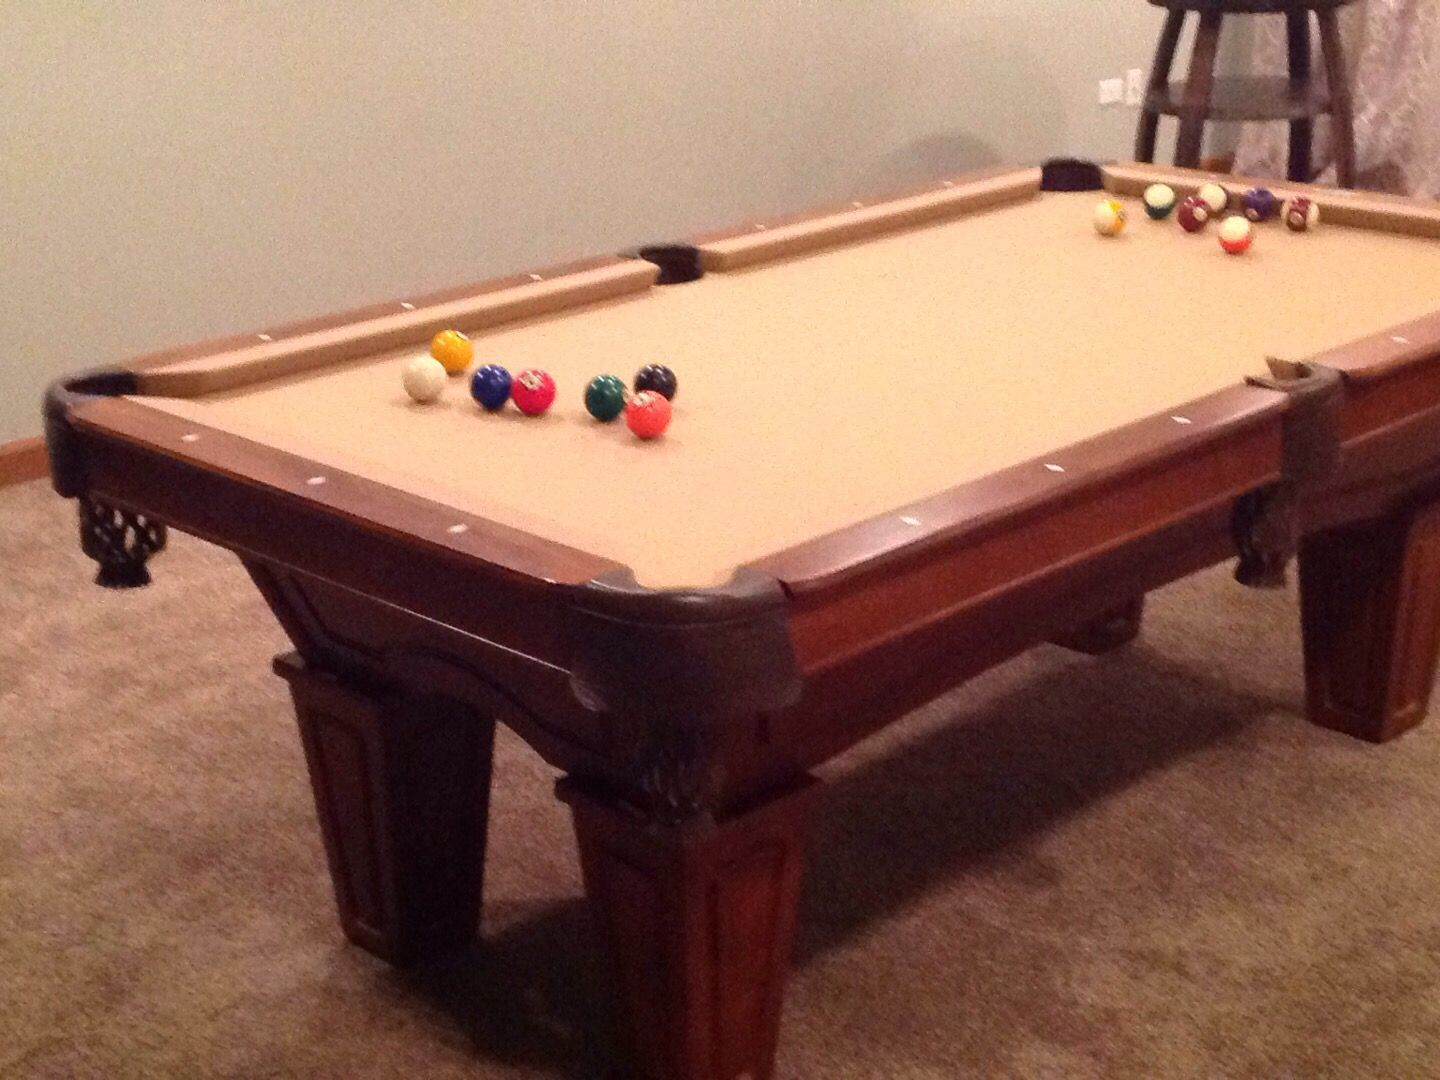 Brunswick Allenton Sold Sold Used Pool Tables Billiard Tables - Brunswick allenton pool table